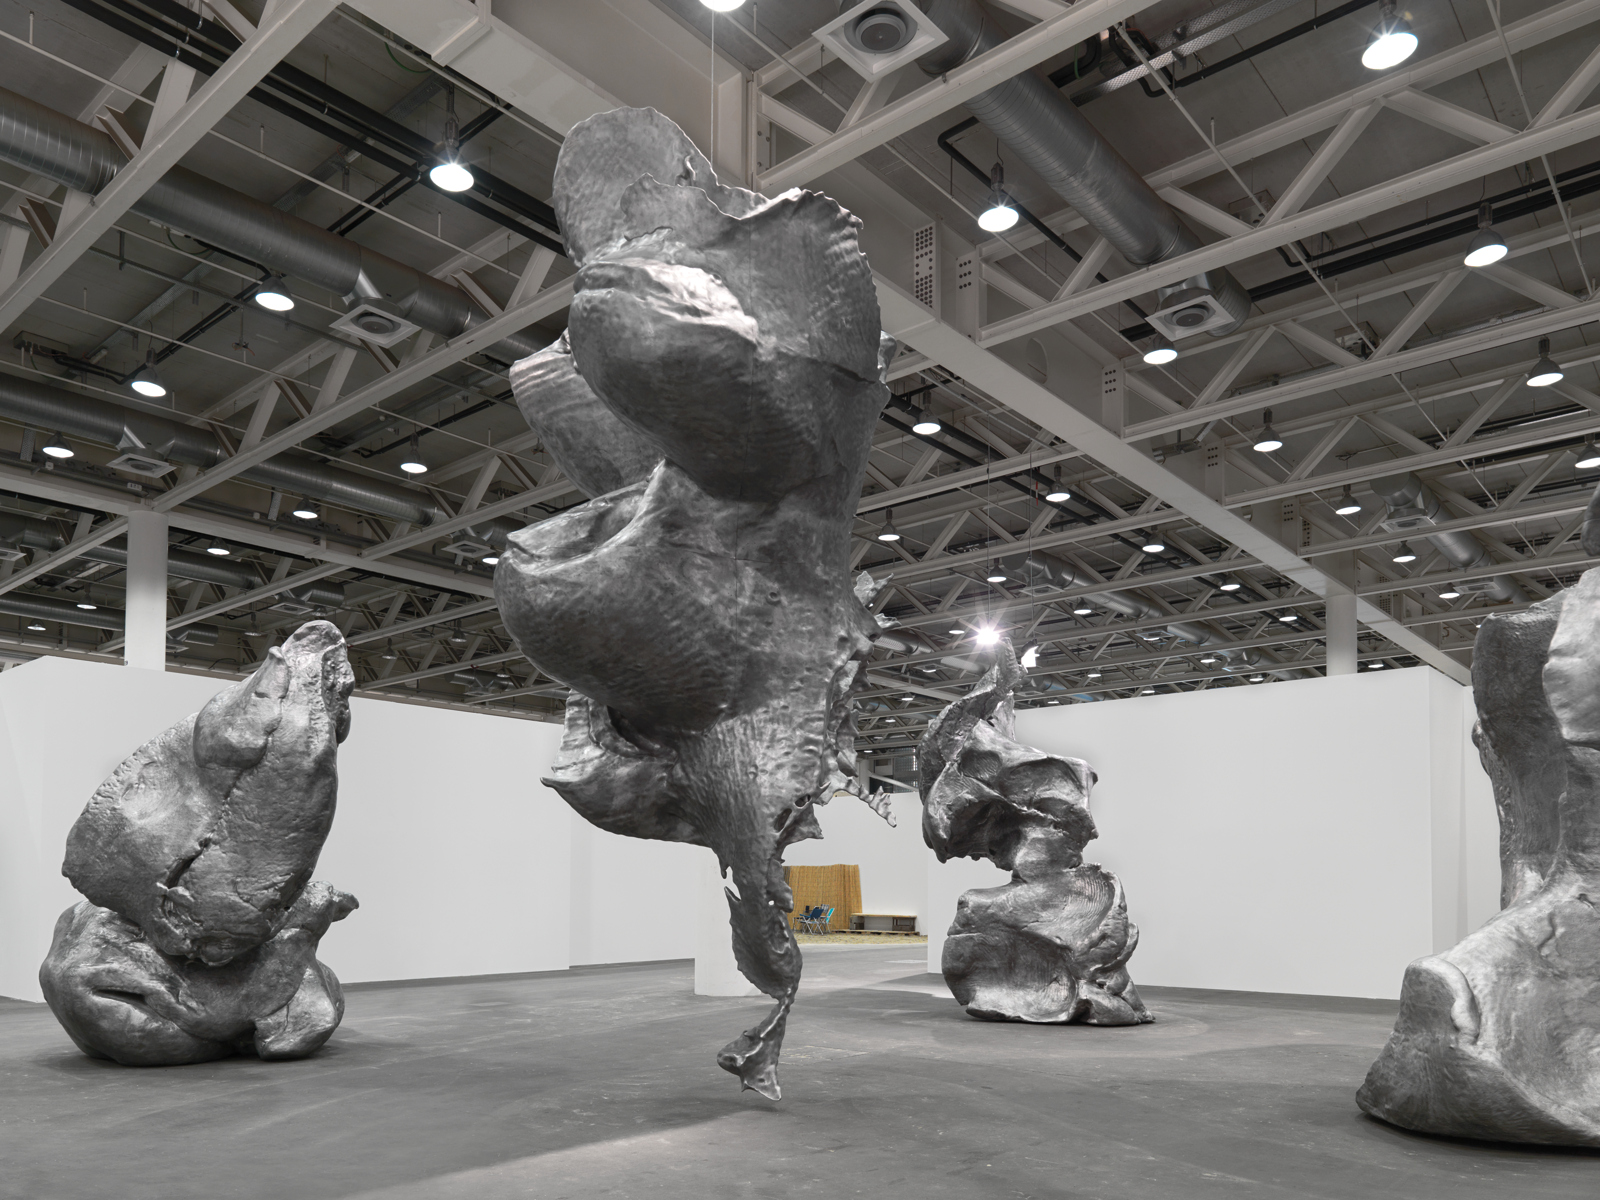 Urs Fischer / Exhibition view, Art Unlimited Basel / 2010